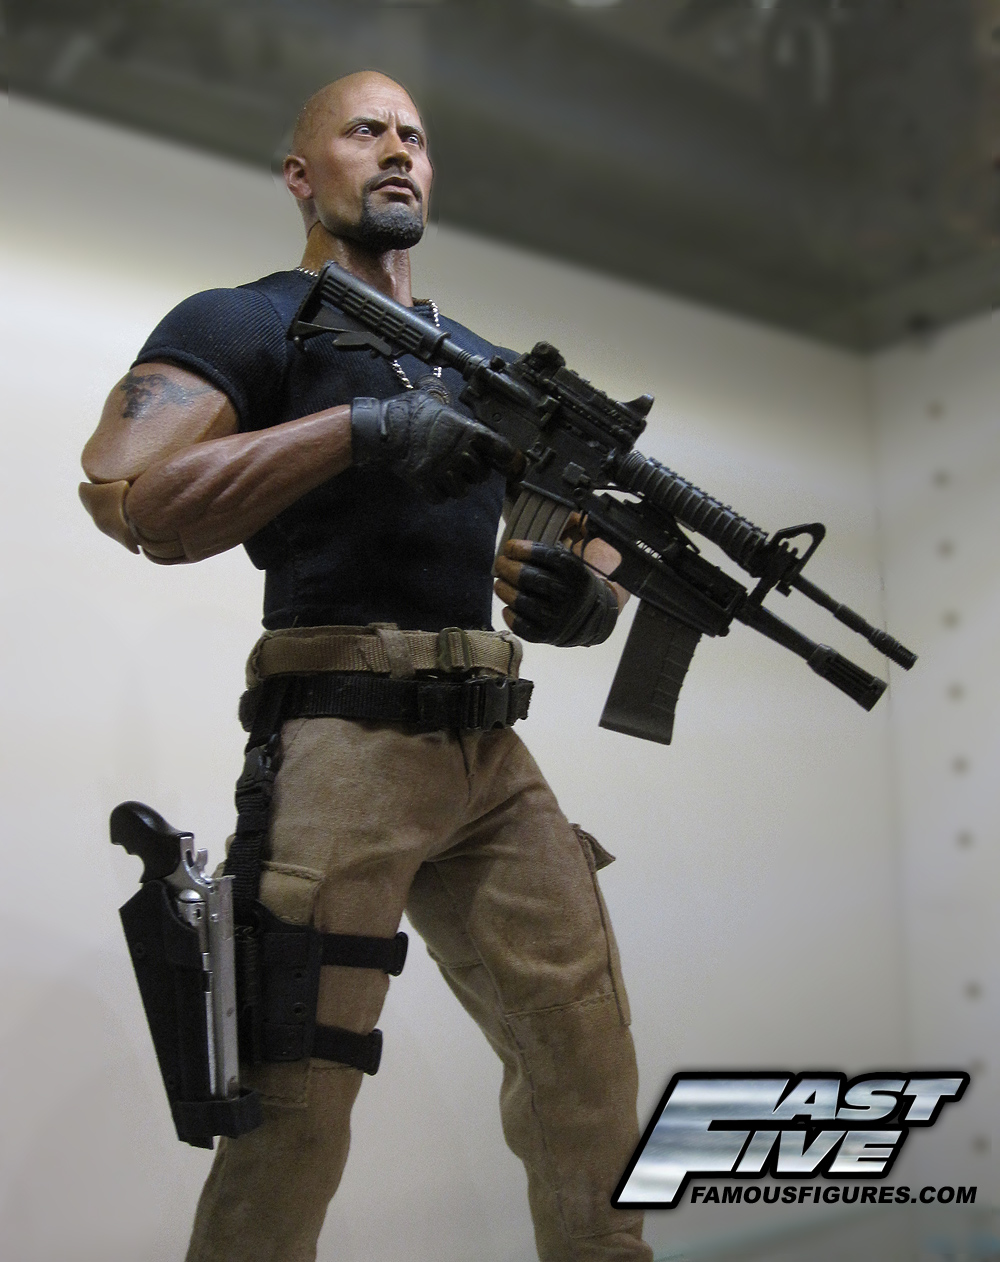 Fast And Furious 6 Figures